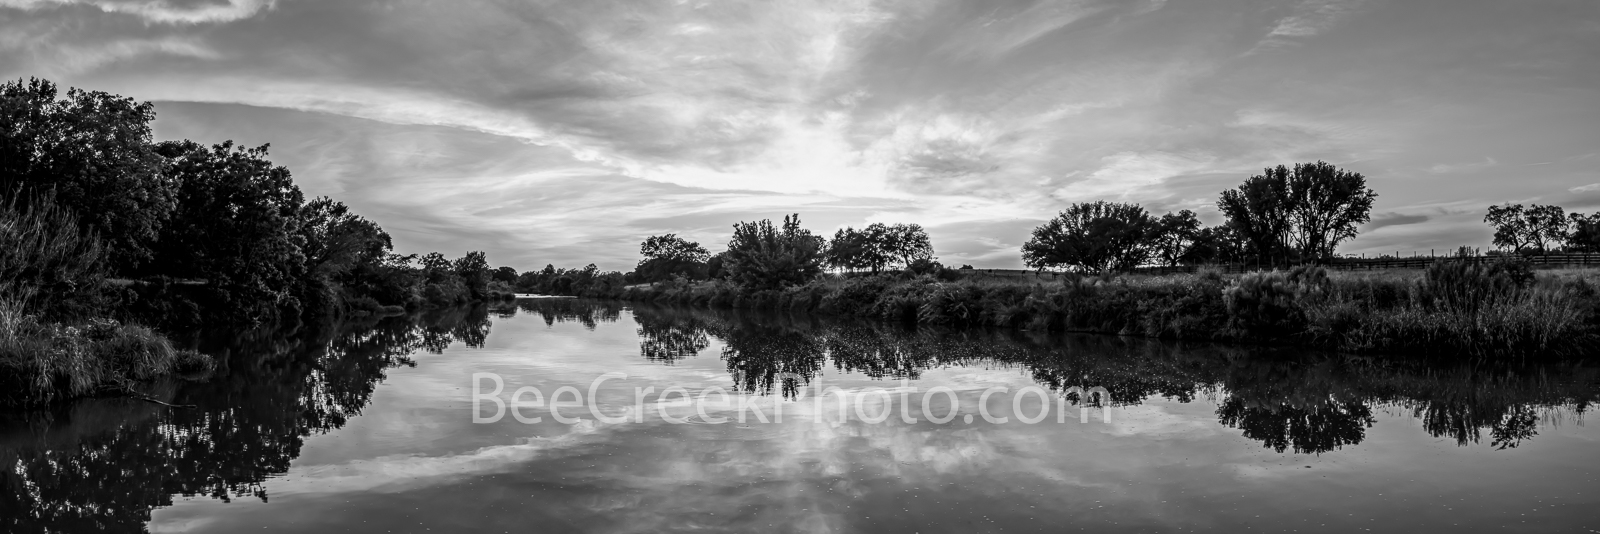 Texas Hill Country Sunset Panorama BW - Texas hill country sunset panorama in black and white along the Texas river. The sun...